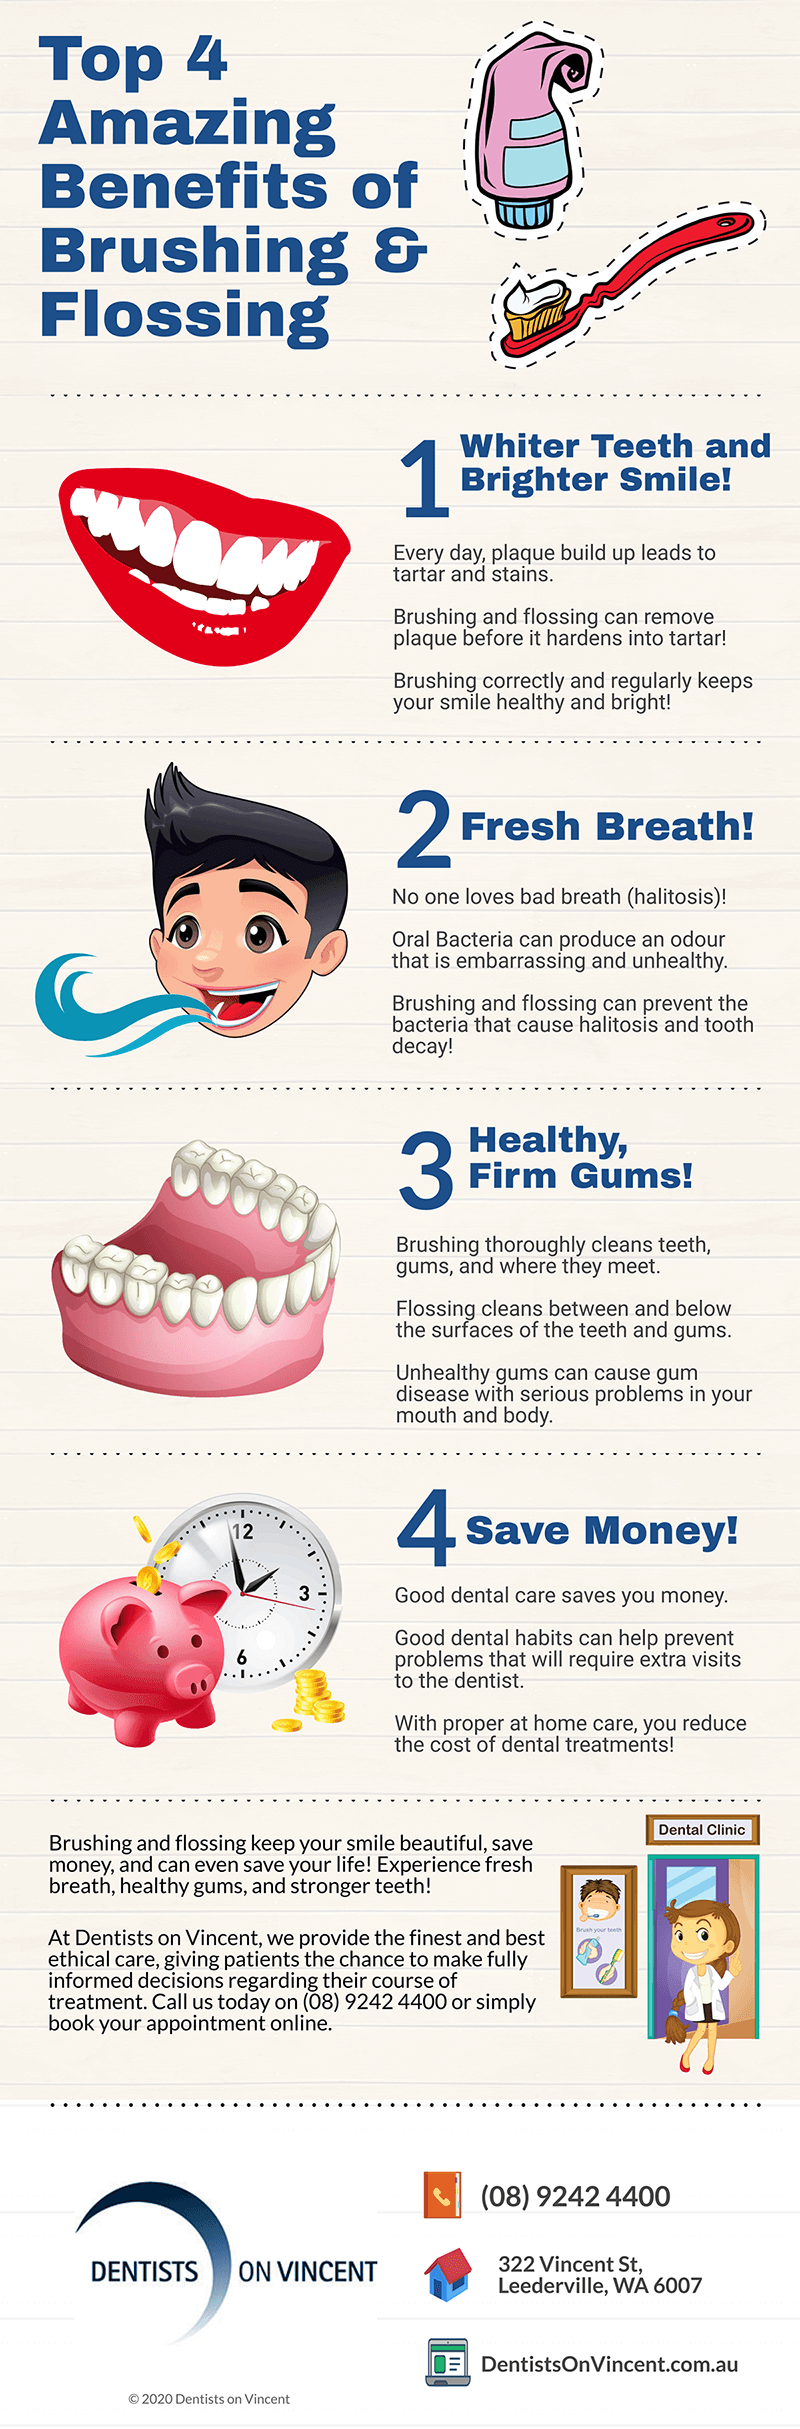 leederville dentist tips top 4 amazing benefits of brushing and flossing